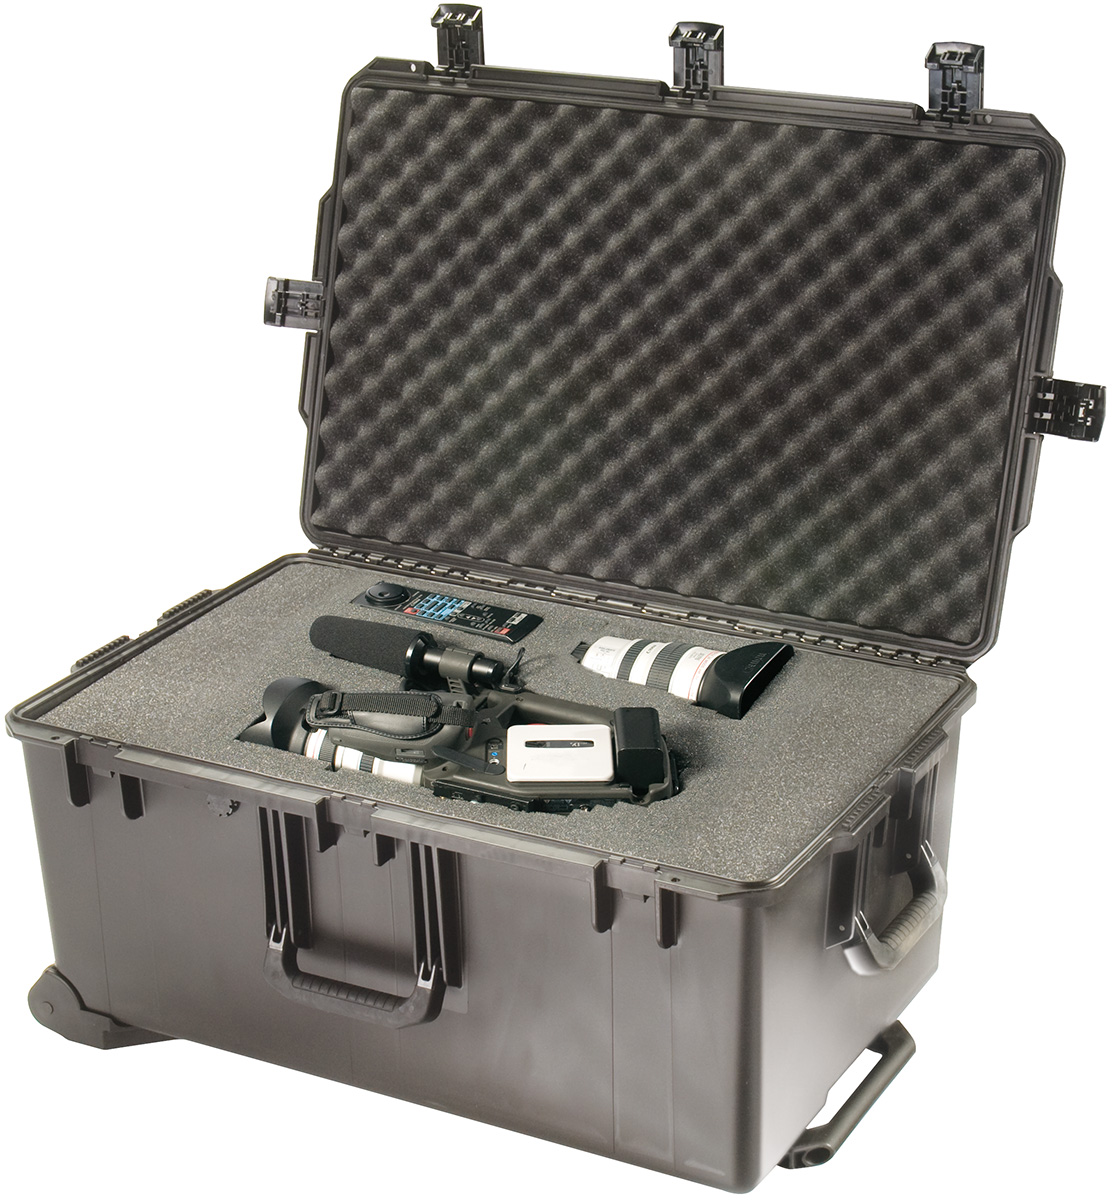 pelican peli products iM2975 storm video camera watertight case